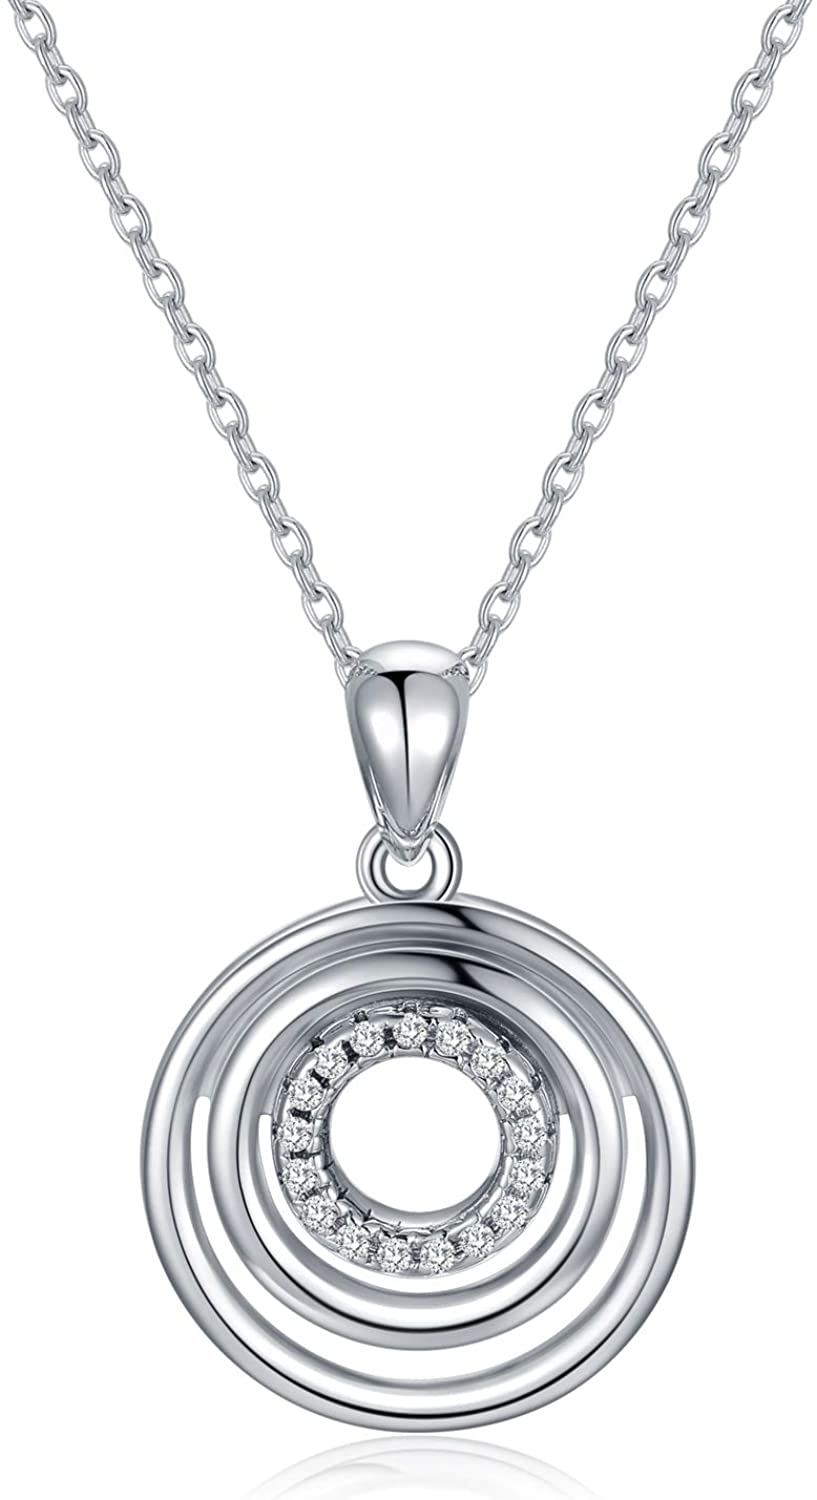 3 Circles Necklace Sterling Silver Multi Round Hoops Drop Generation Pendant CZ Chain Grandma Mother Daughter Friendship Jewelry Gift for Her Women Teens Sister Girlfriend